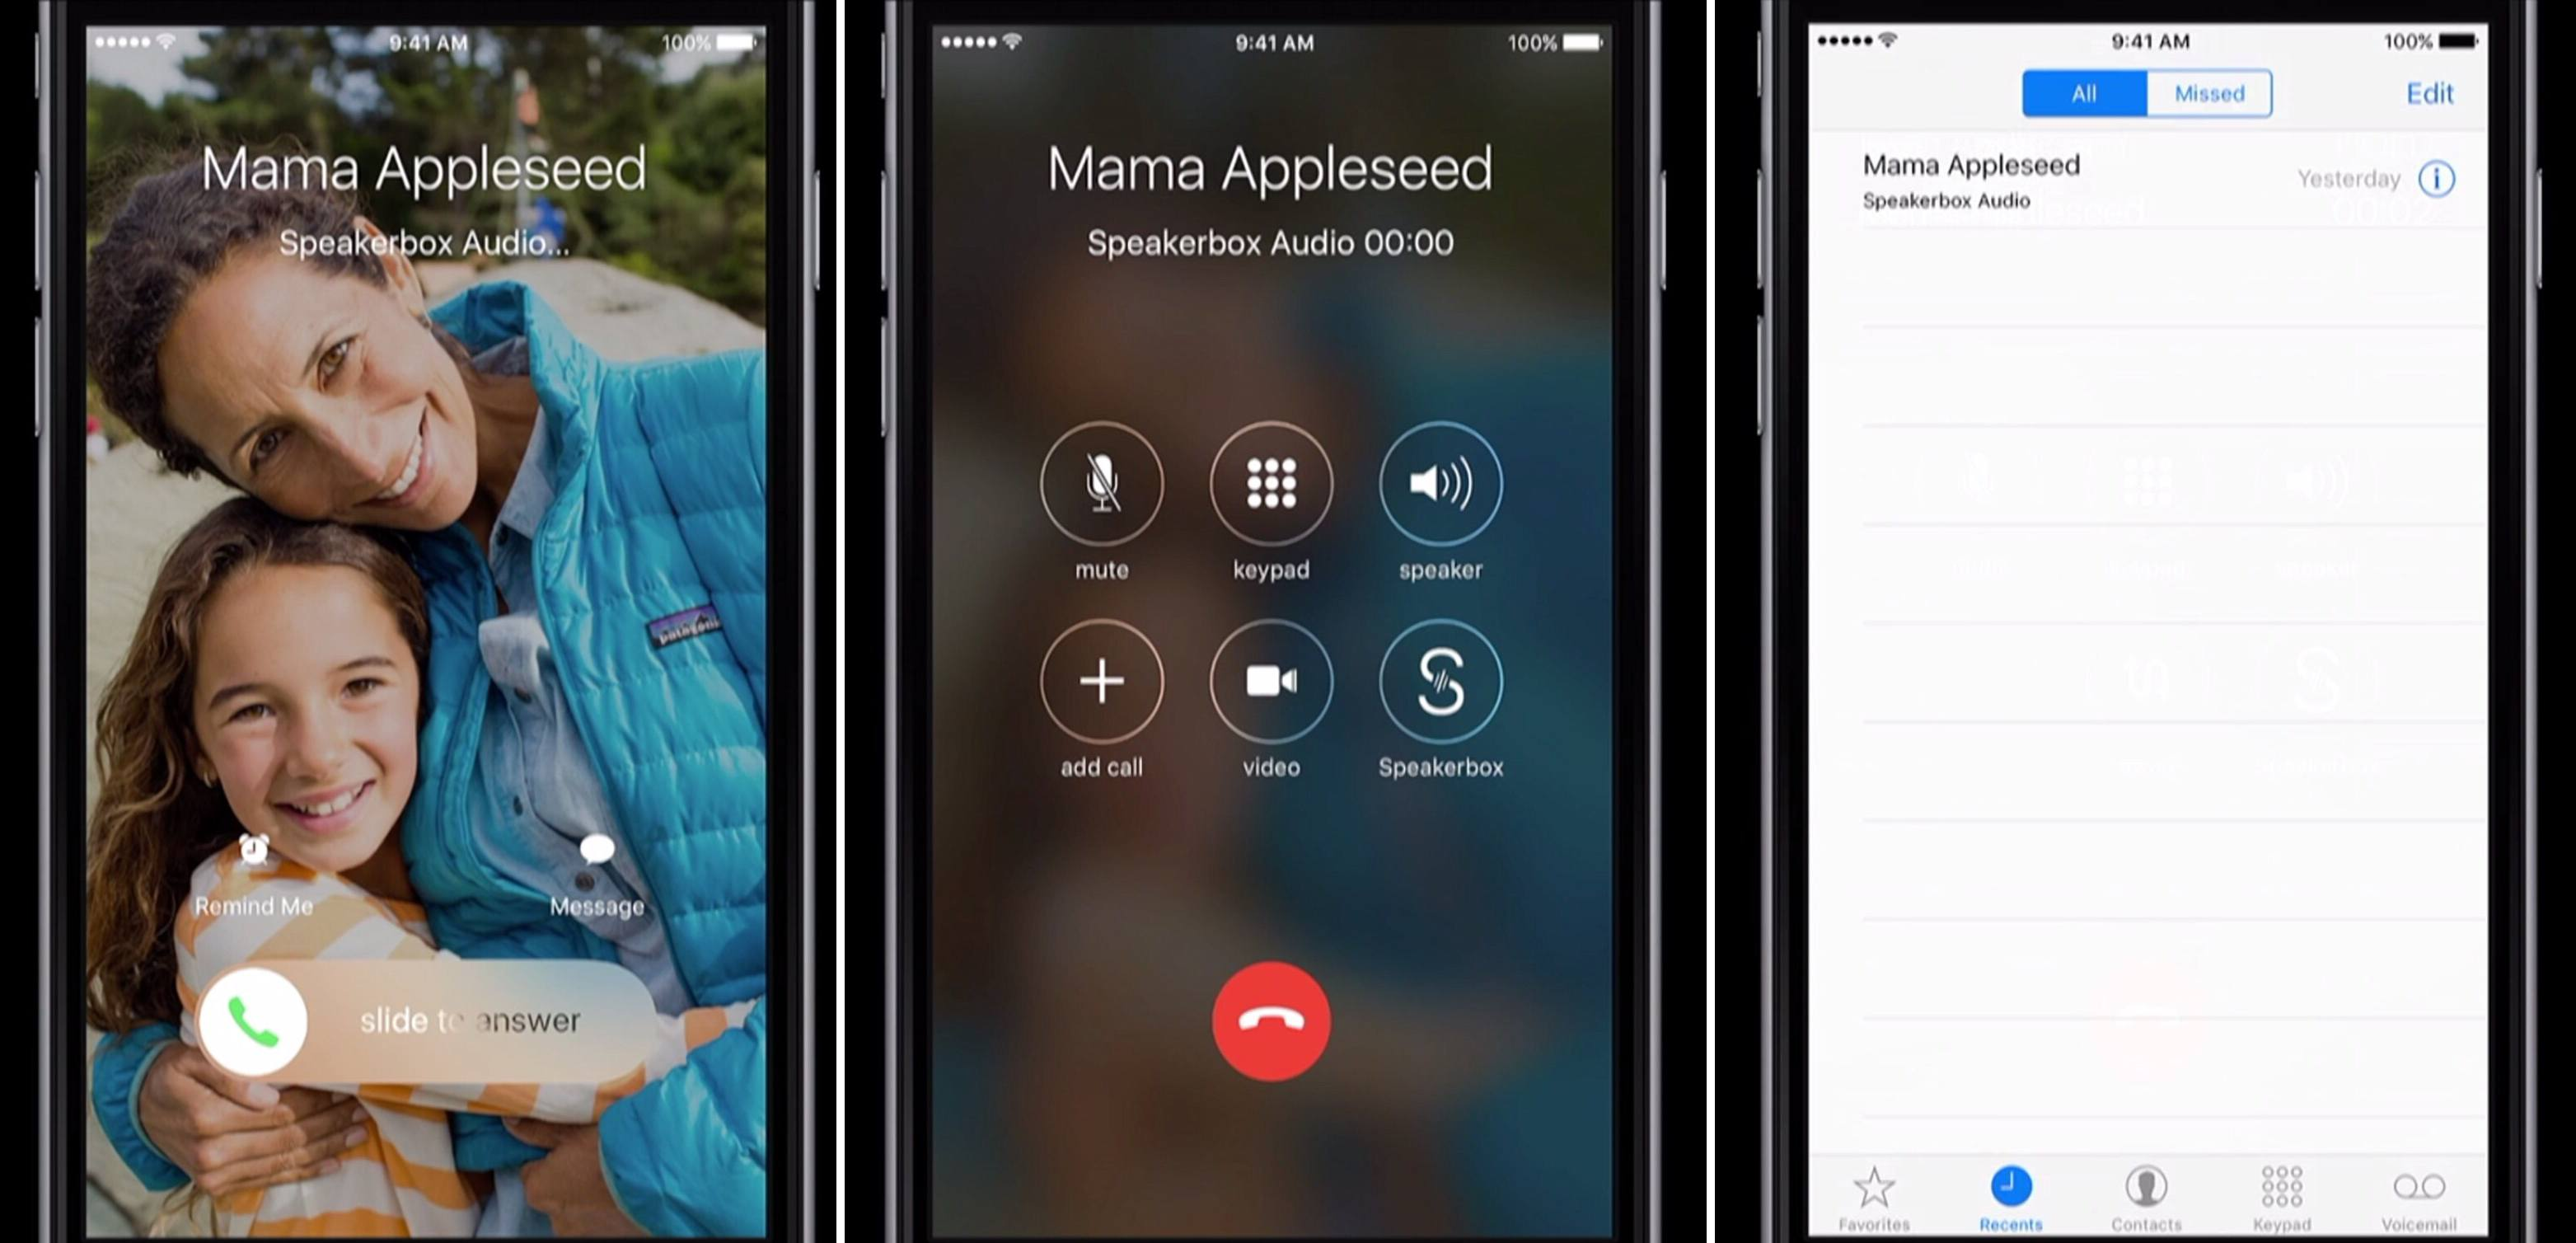 A demo CallKit app on iOS 10.